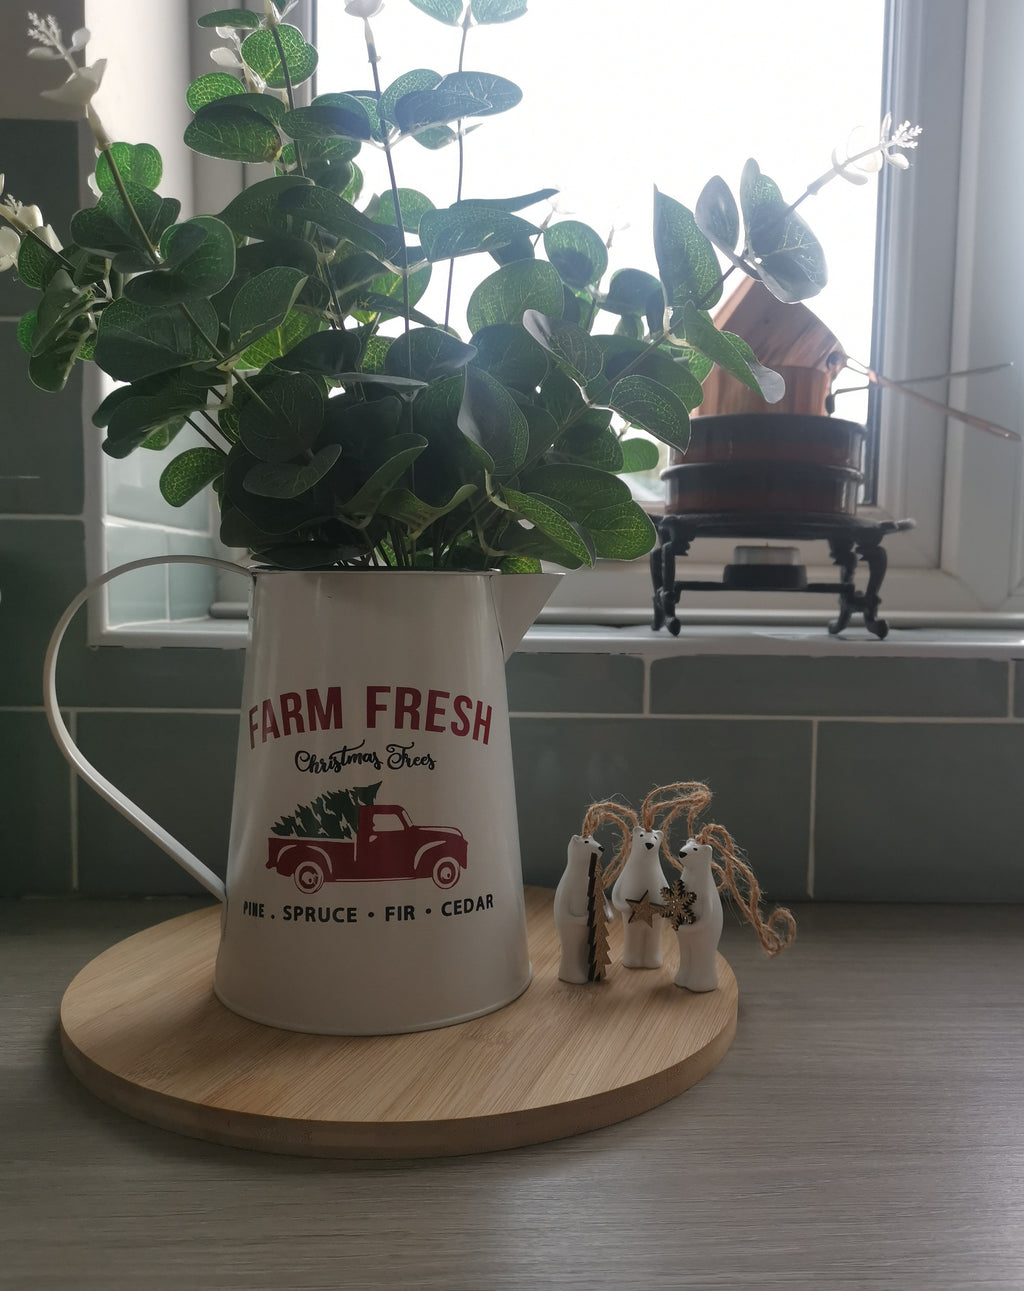 White Tin Farm Fresh Jug - TBI